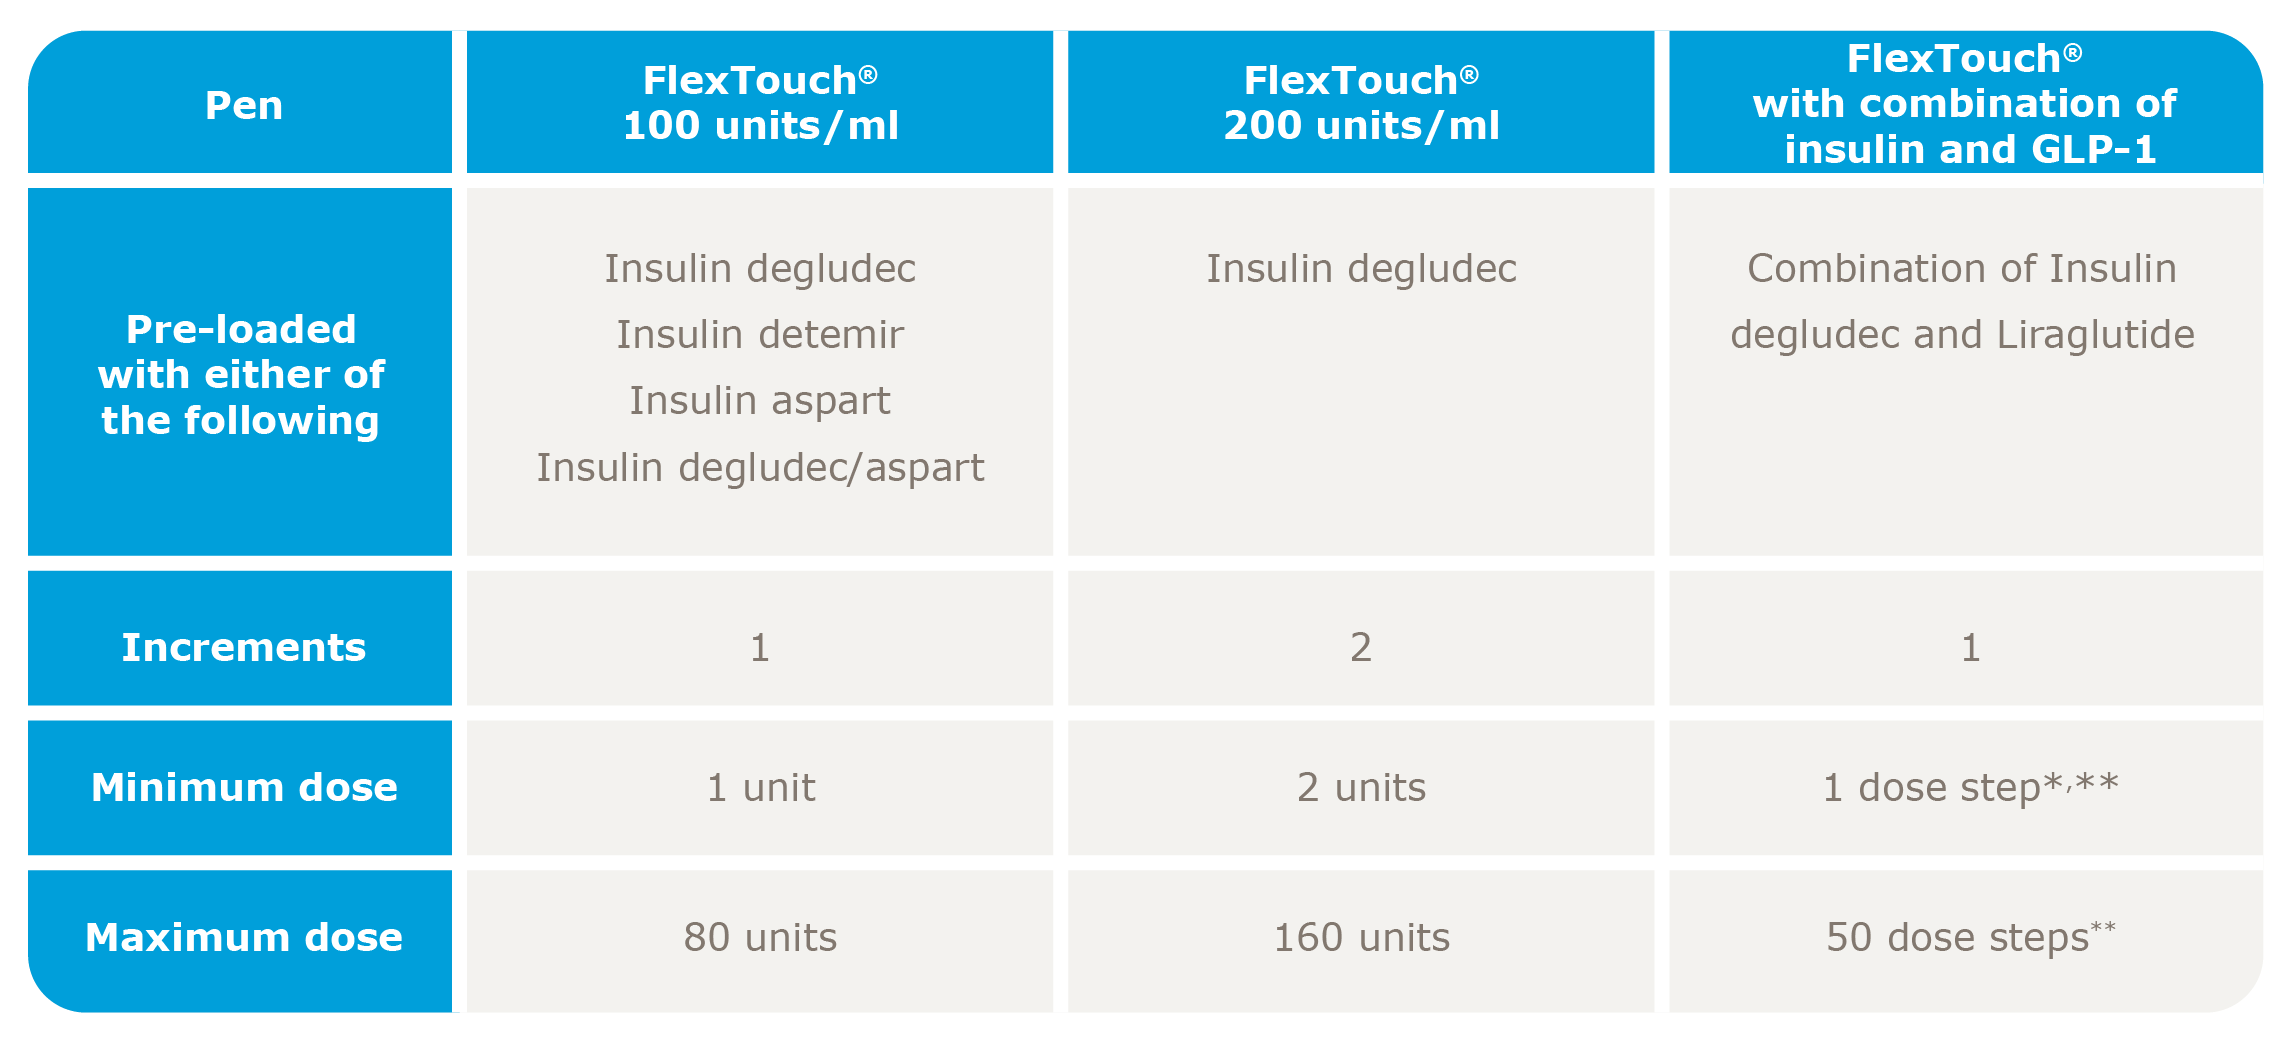 Summary table of FlexTouch® dosing and treatment combination